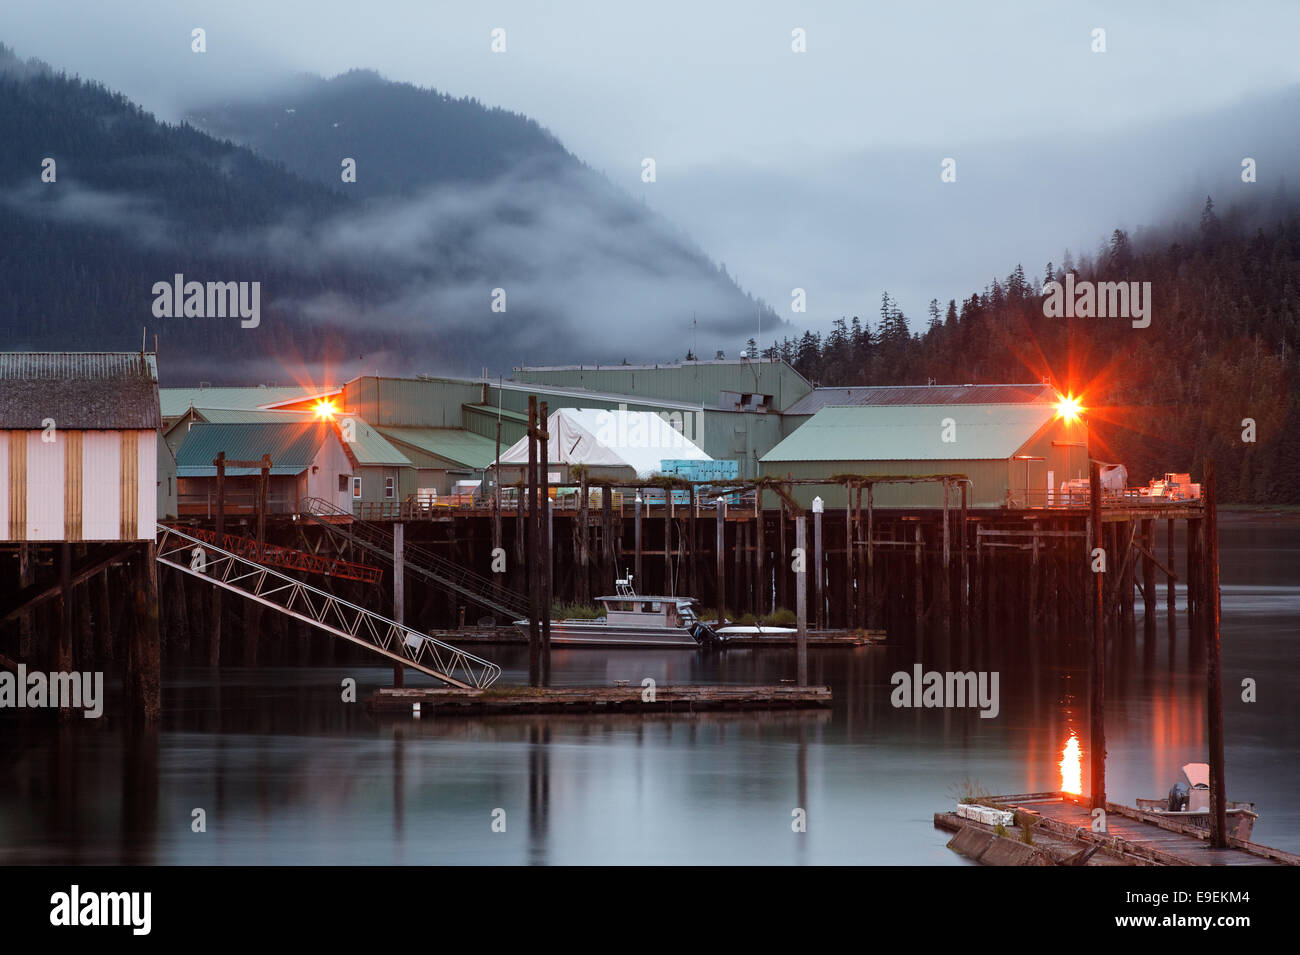 Wharfs and Ocean Beauty Seafoods Cannery, North Harbor, Petersburg, Alaska, USA - Stock Image